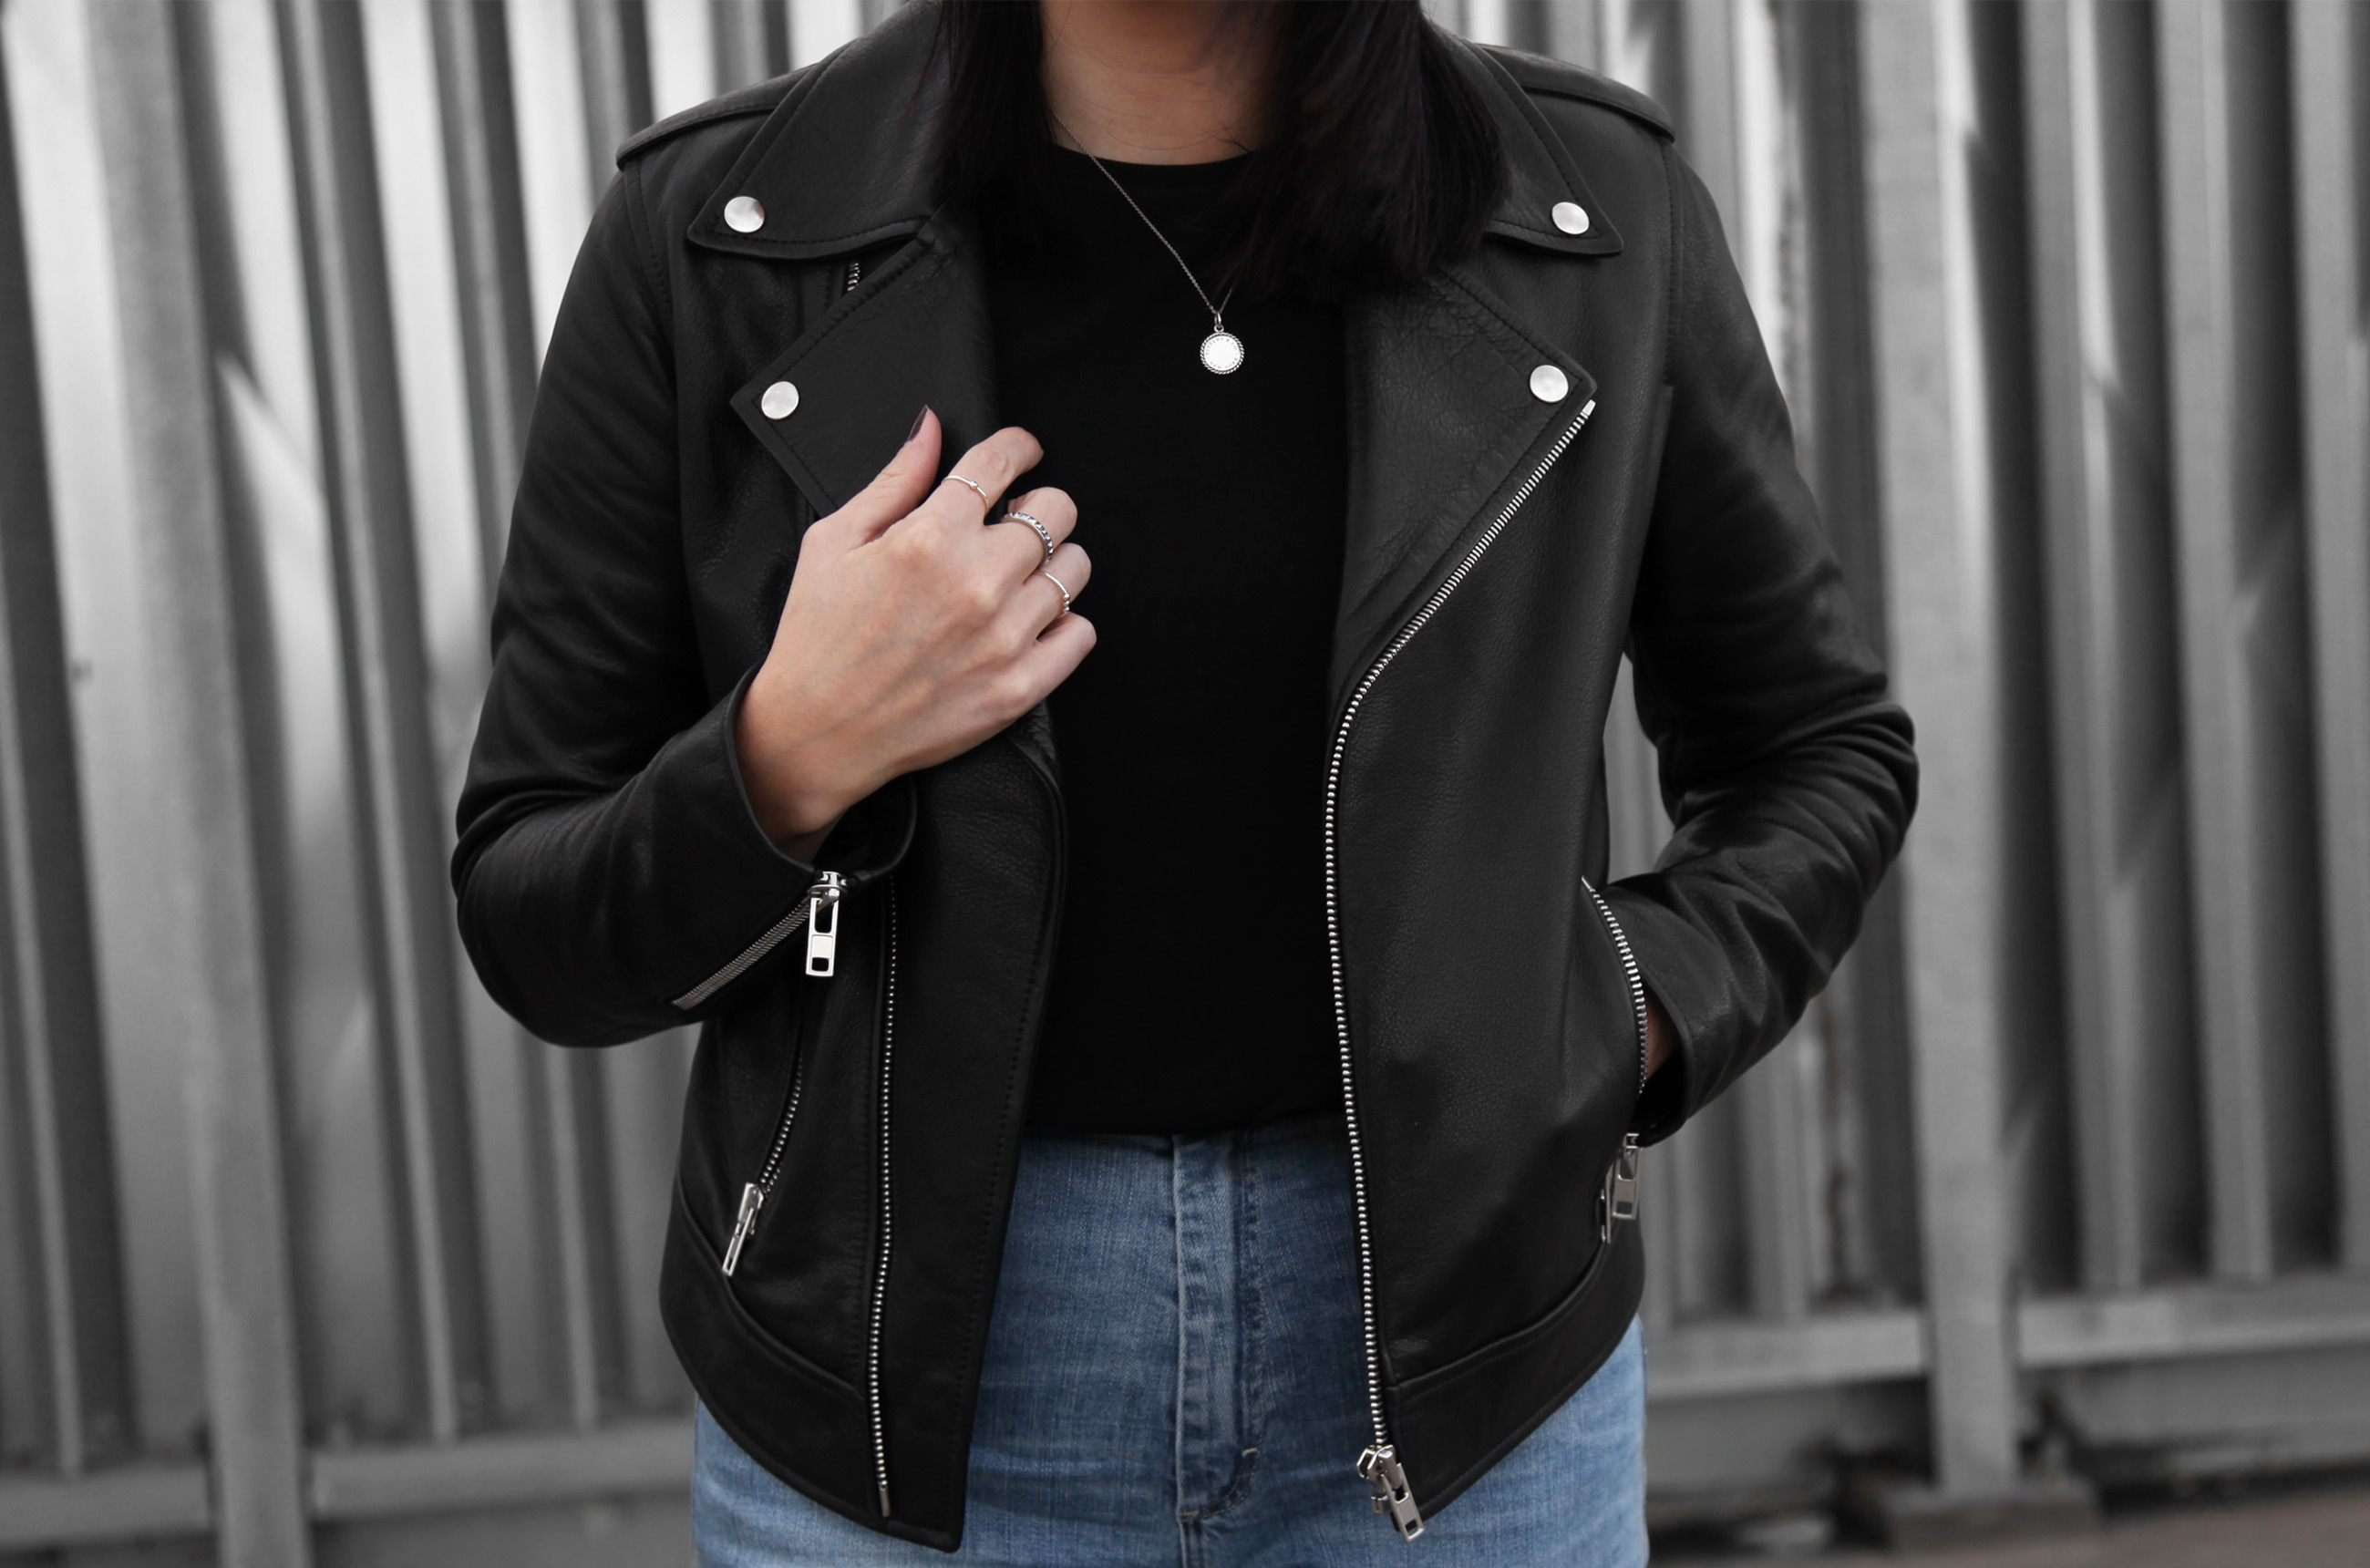 investing in a leather jacket - designbyaikonik 4